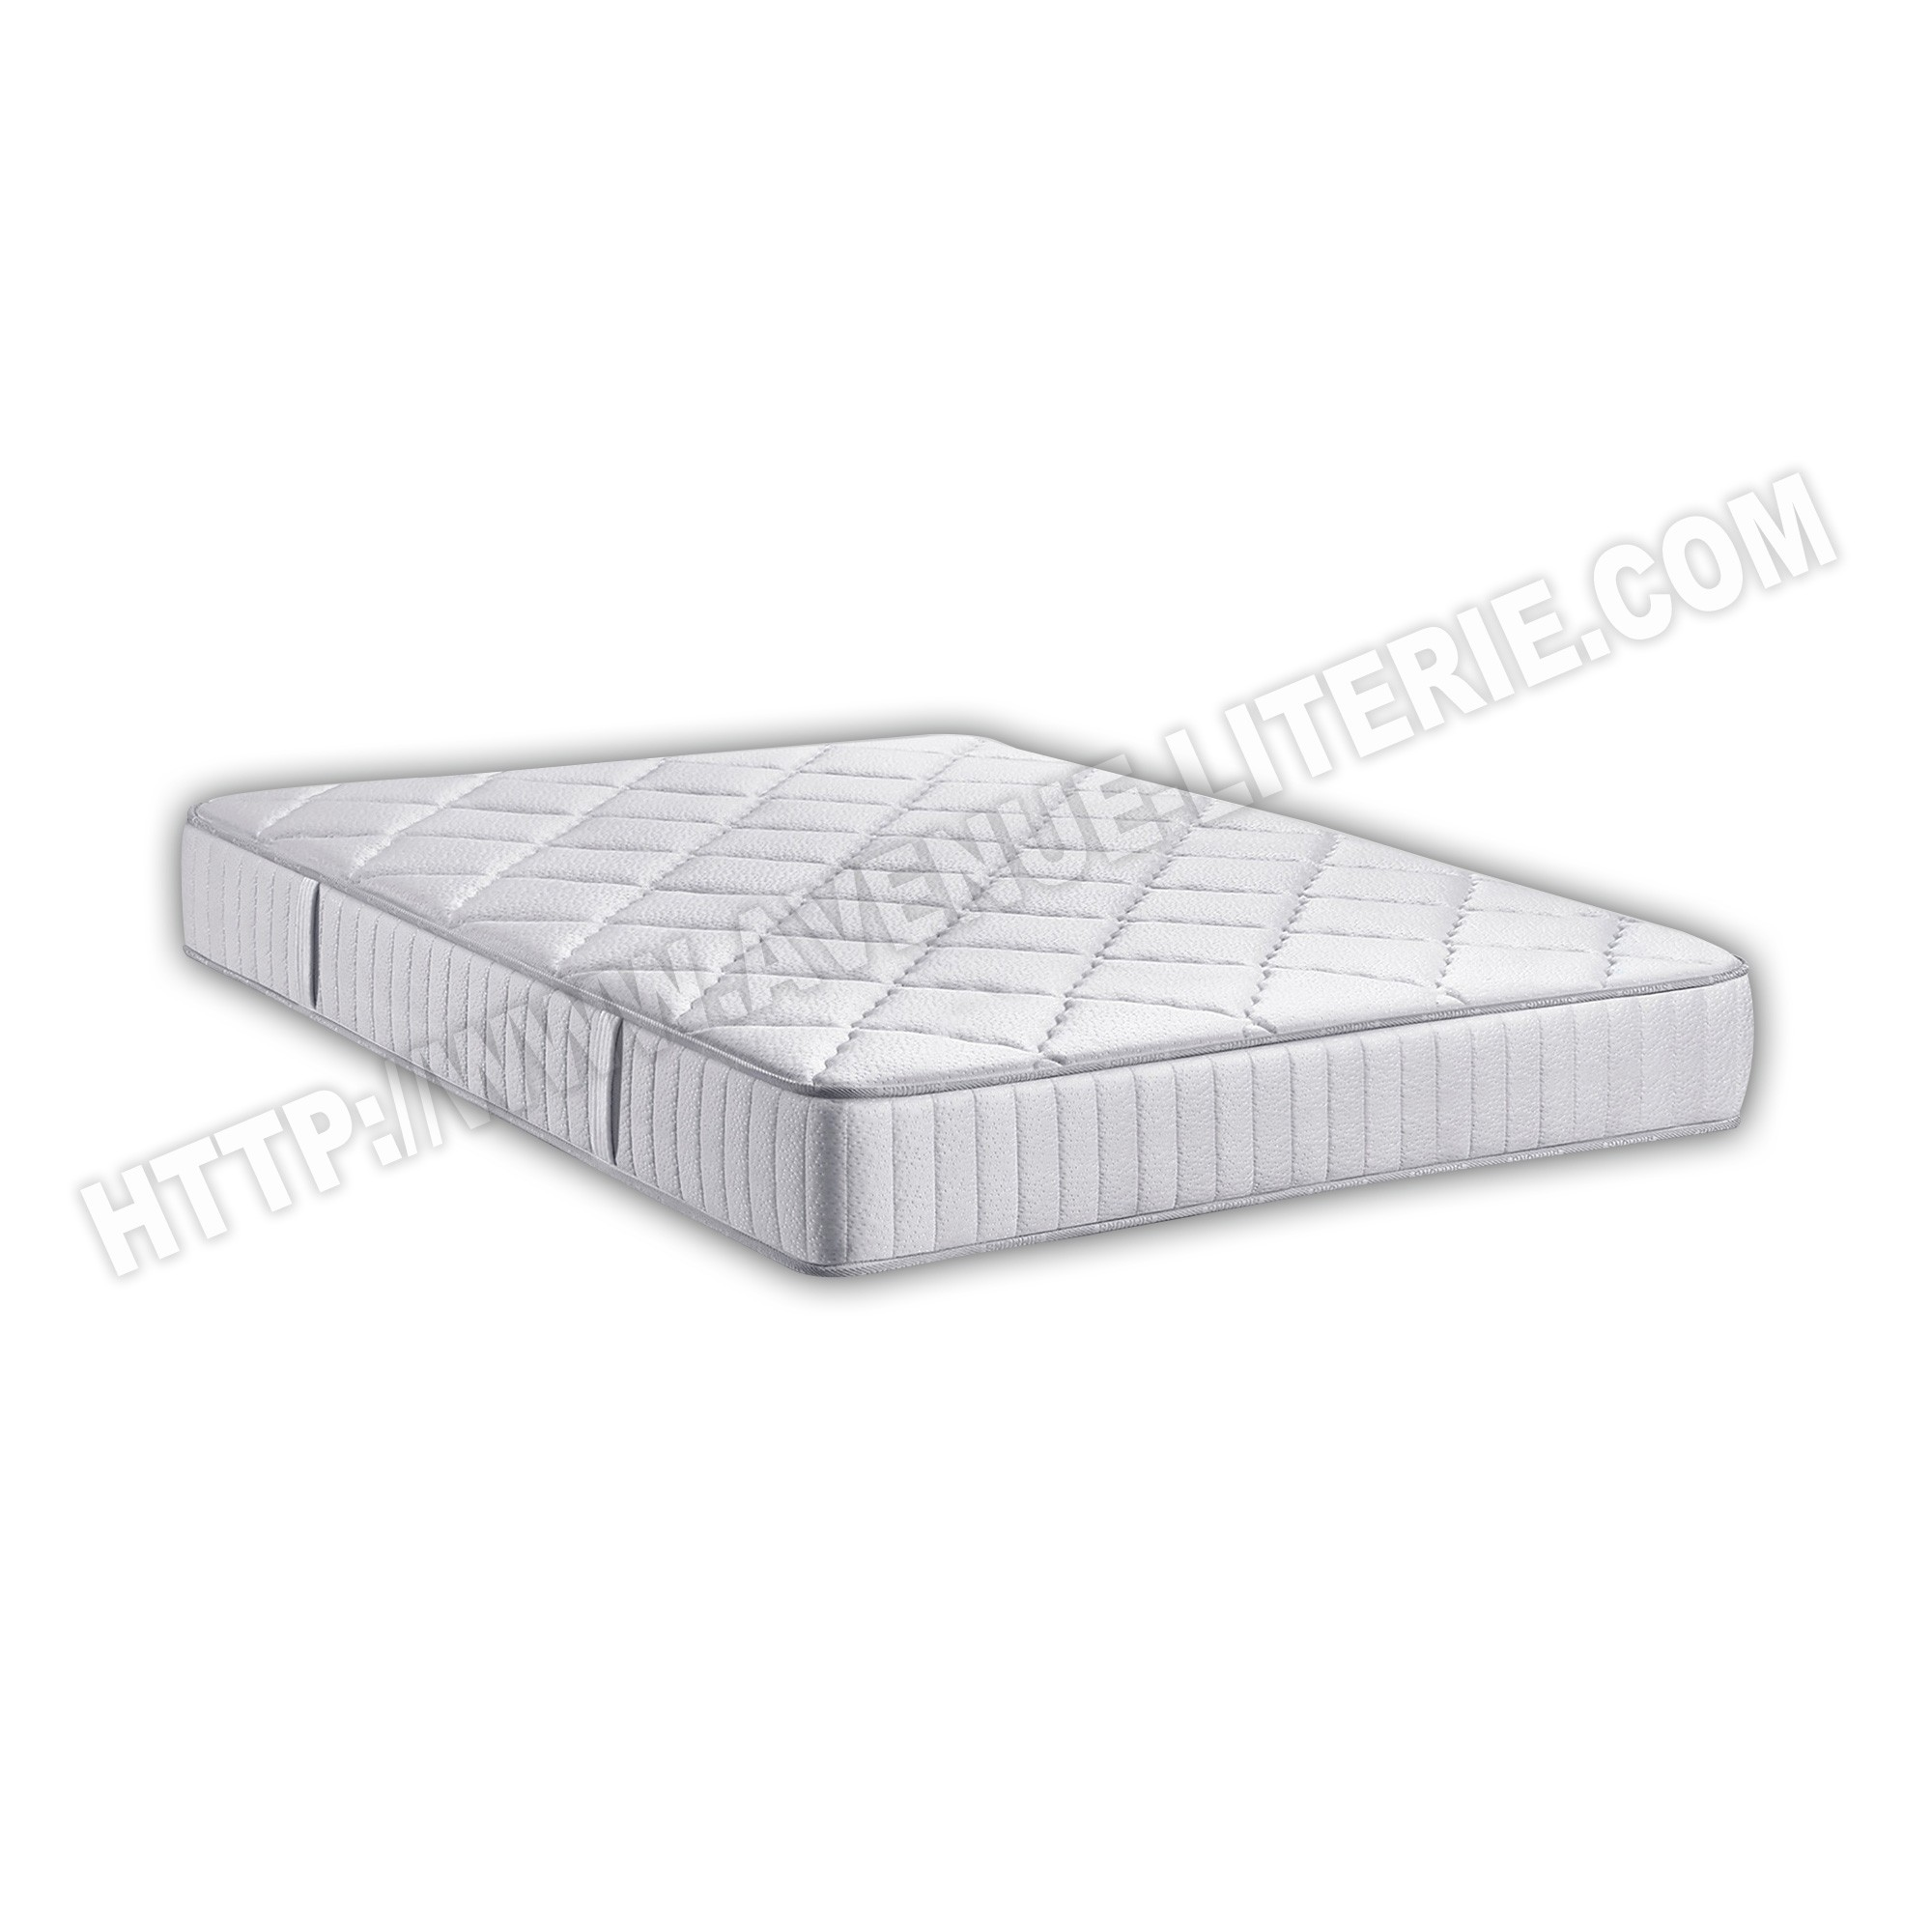 matelas latex 140x190 soldes elegant matelas x latex pas cher fabricant matelas matelas latex x. Black Bedroom Furniture Sets. Home Design Ideas